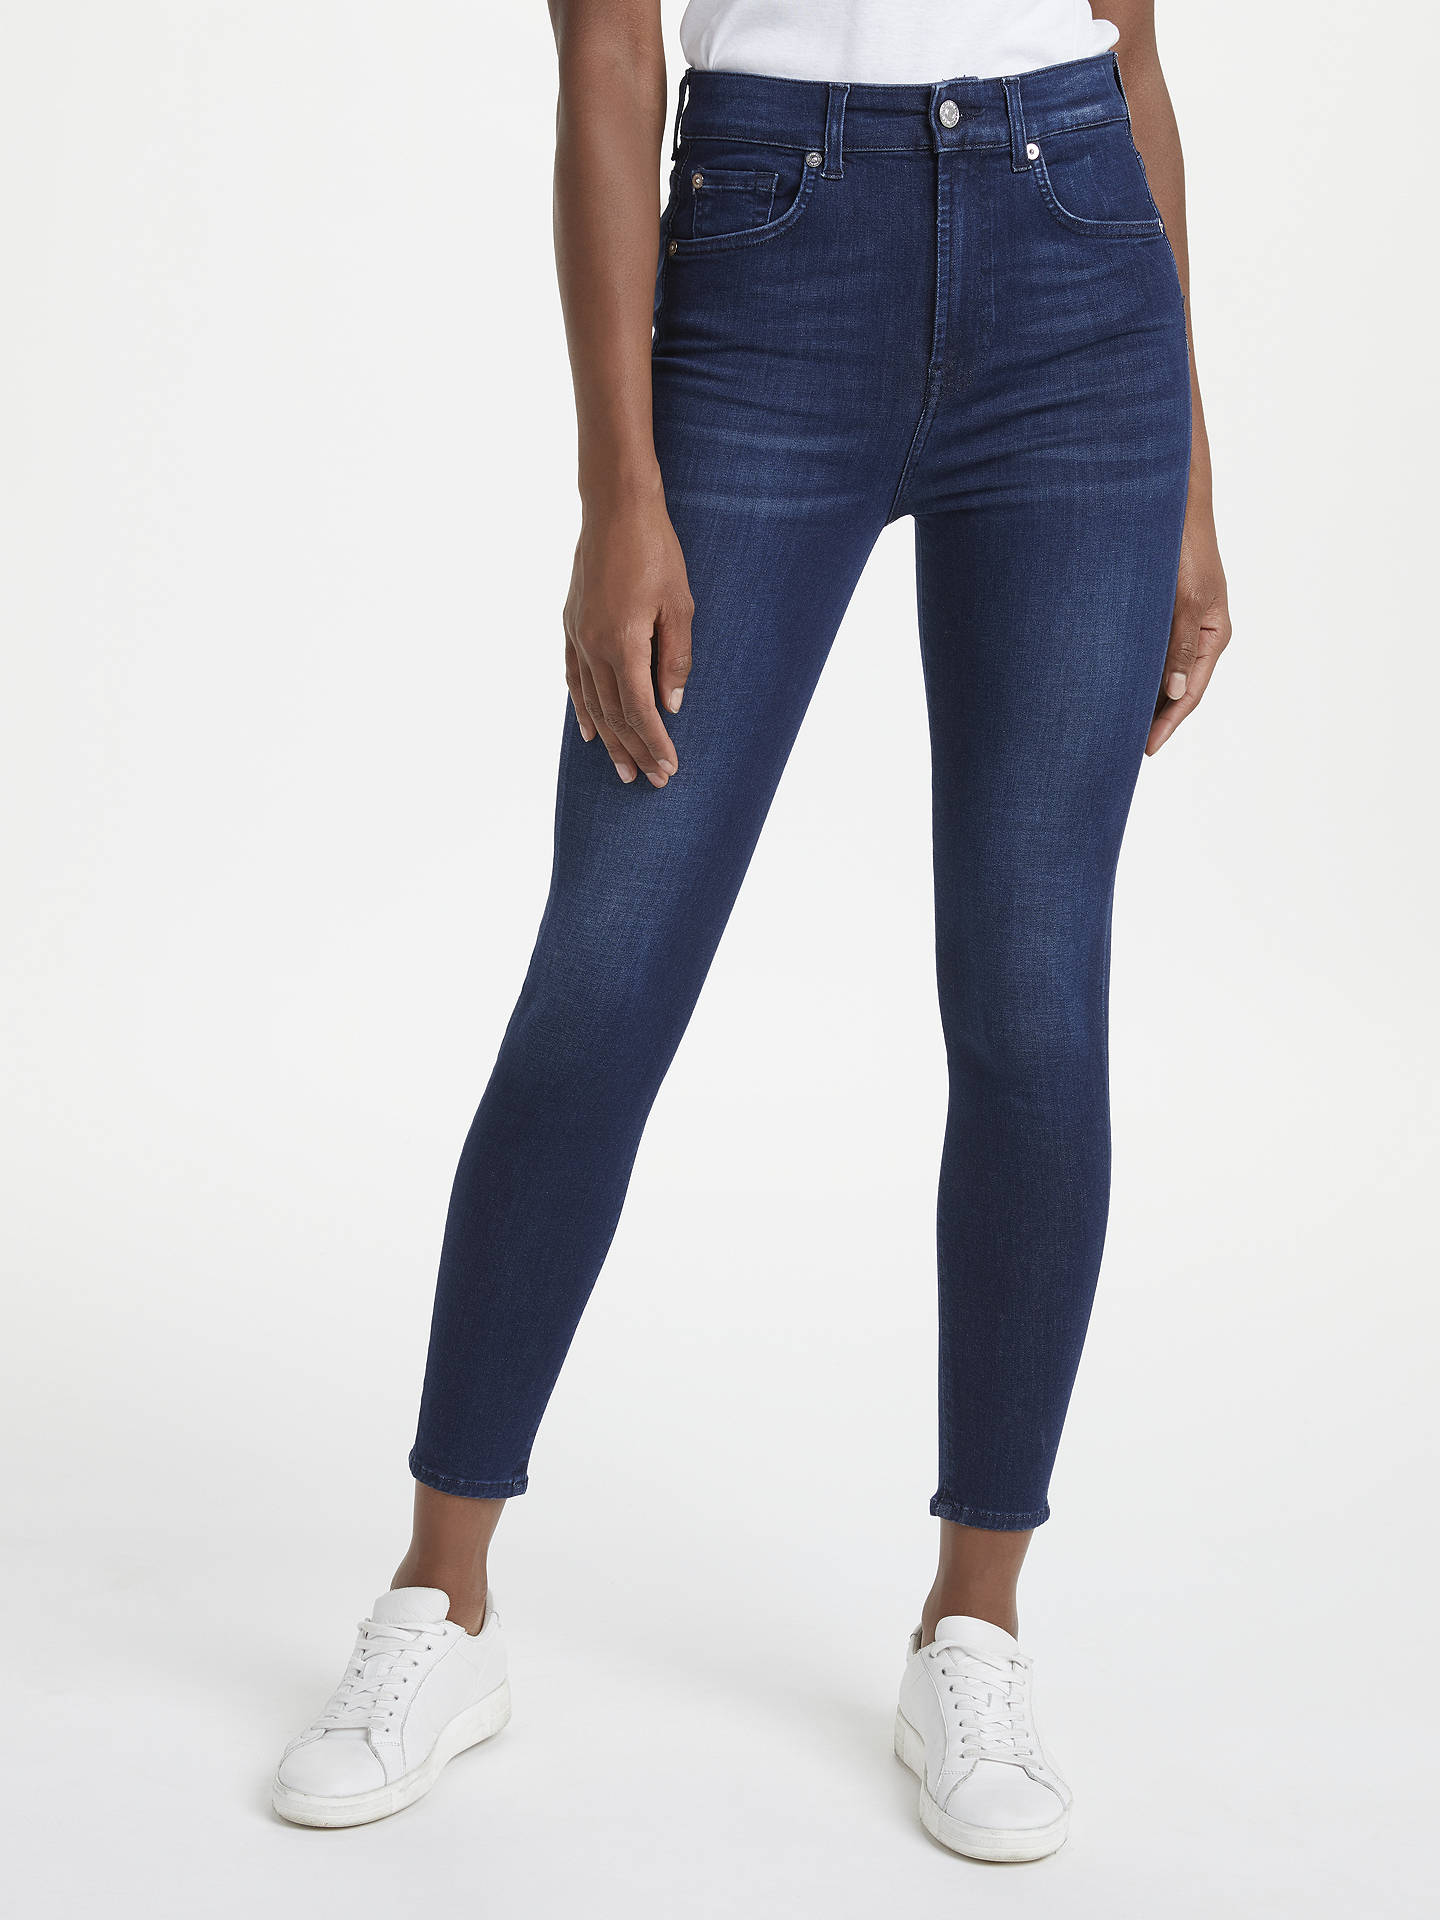 9fd455fedd7700 Buy 7 For All Mankind Aubrey Slim Illusion Jeans, Primary Blue, 27 Online  at ...